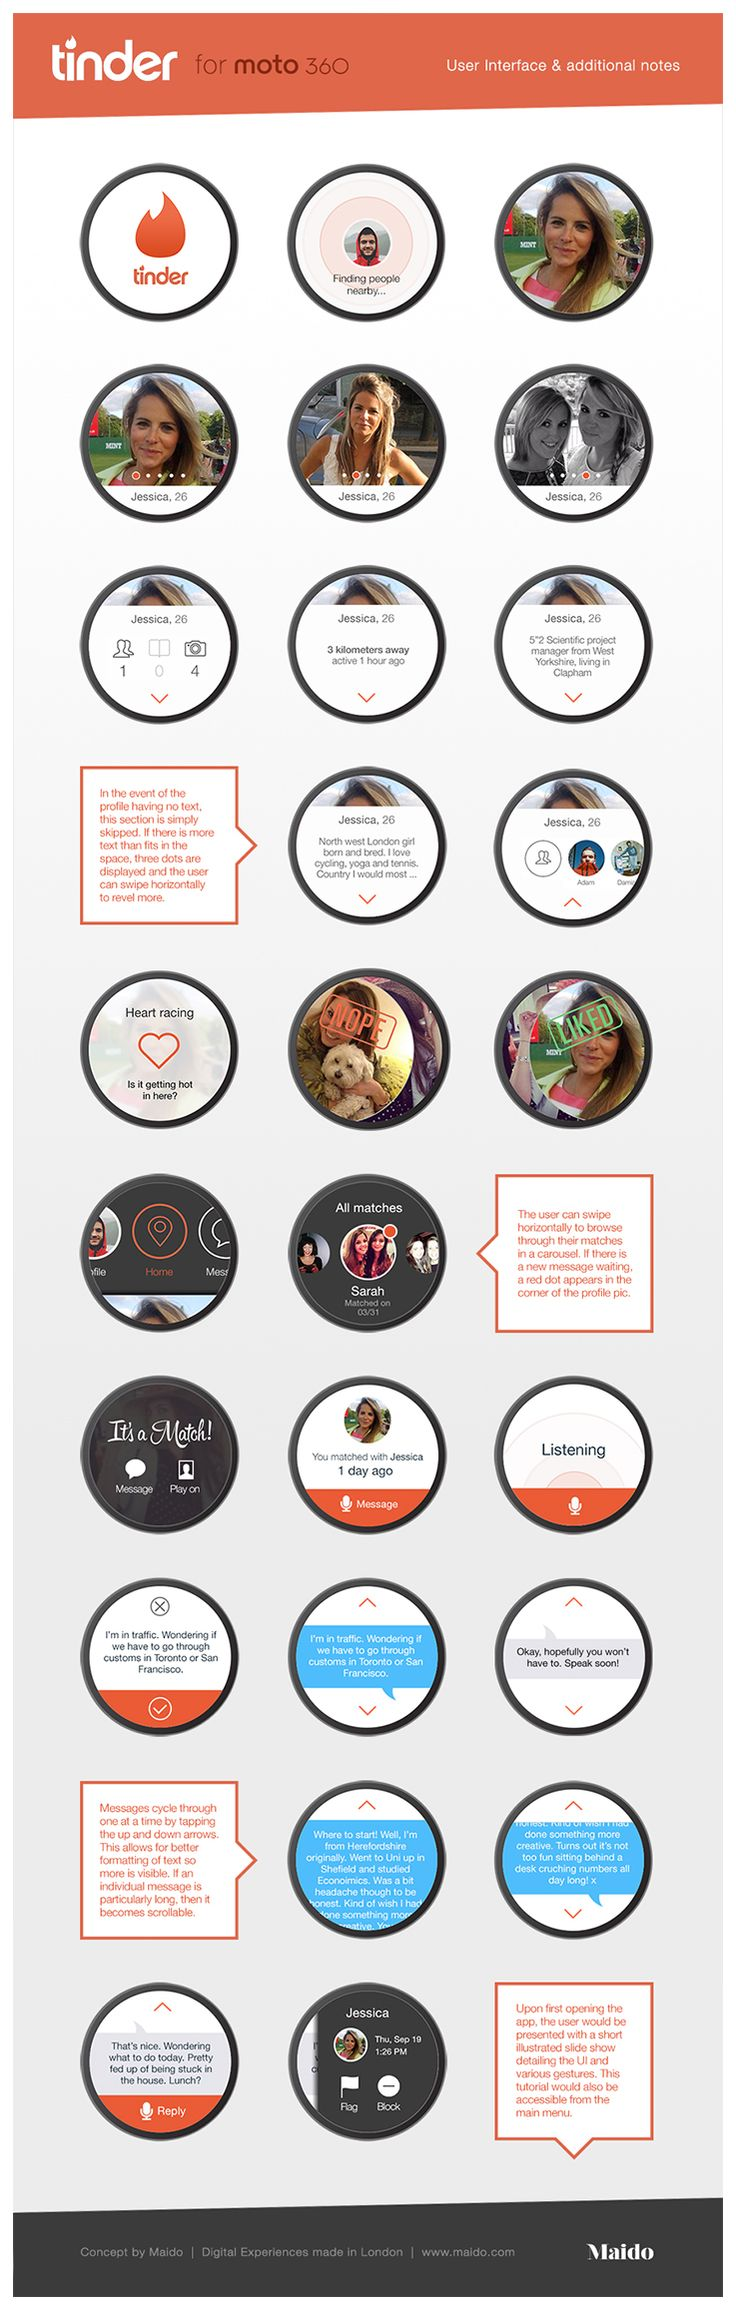 Tinder for Moto 360 concept User Interface and Notes